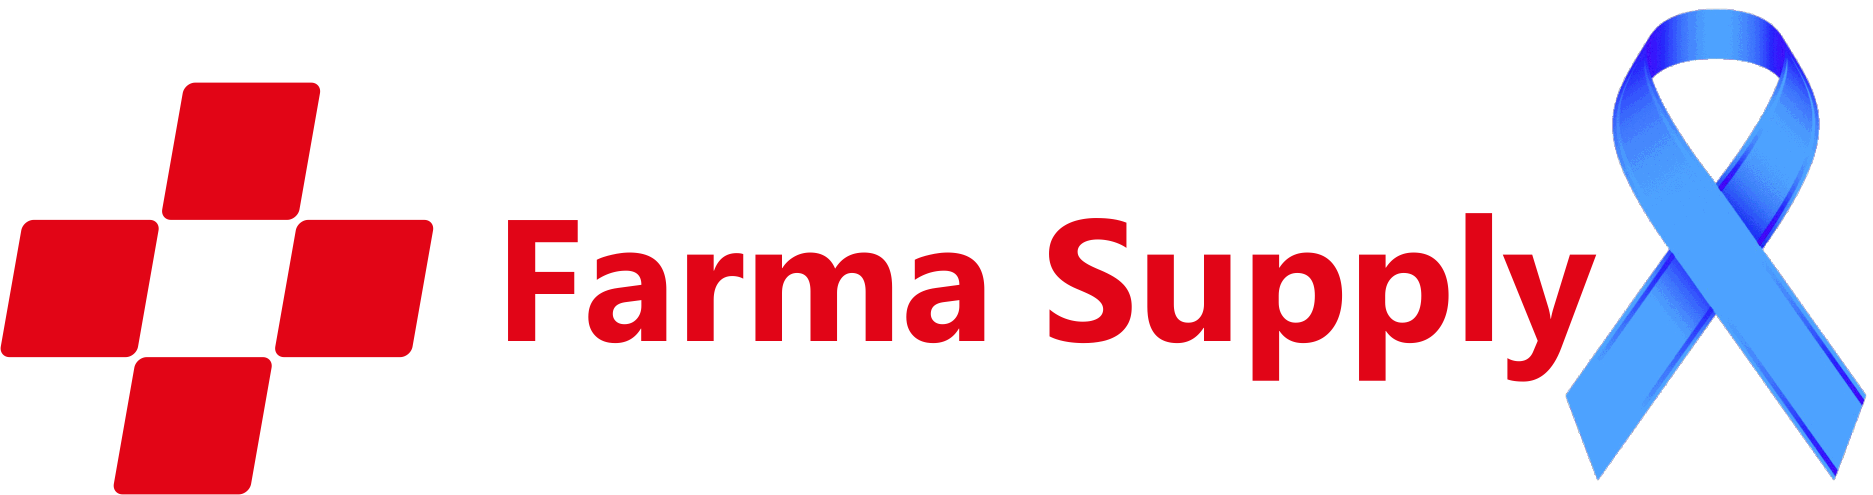 Farma Supply - Medicamentos Importados